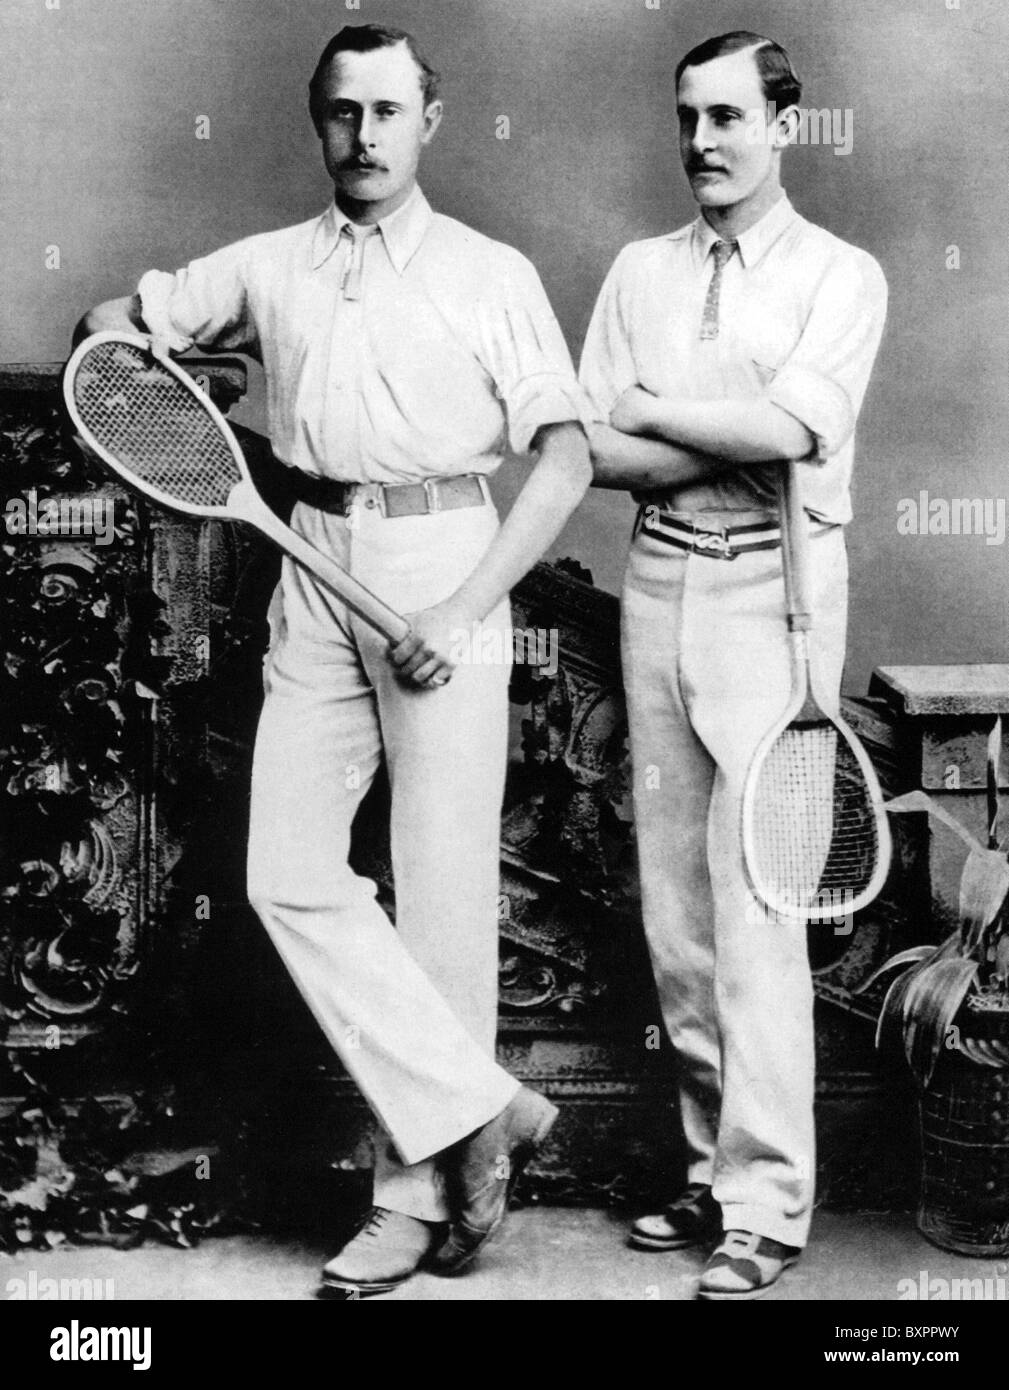 RENSHAW BROTHERS English Wimbledon tennis doubles champions